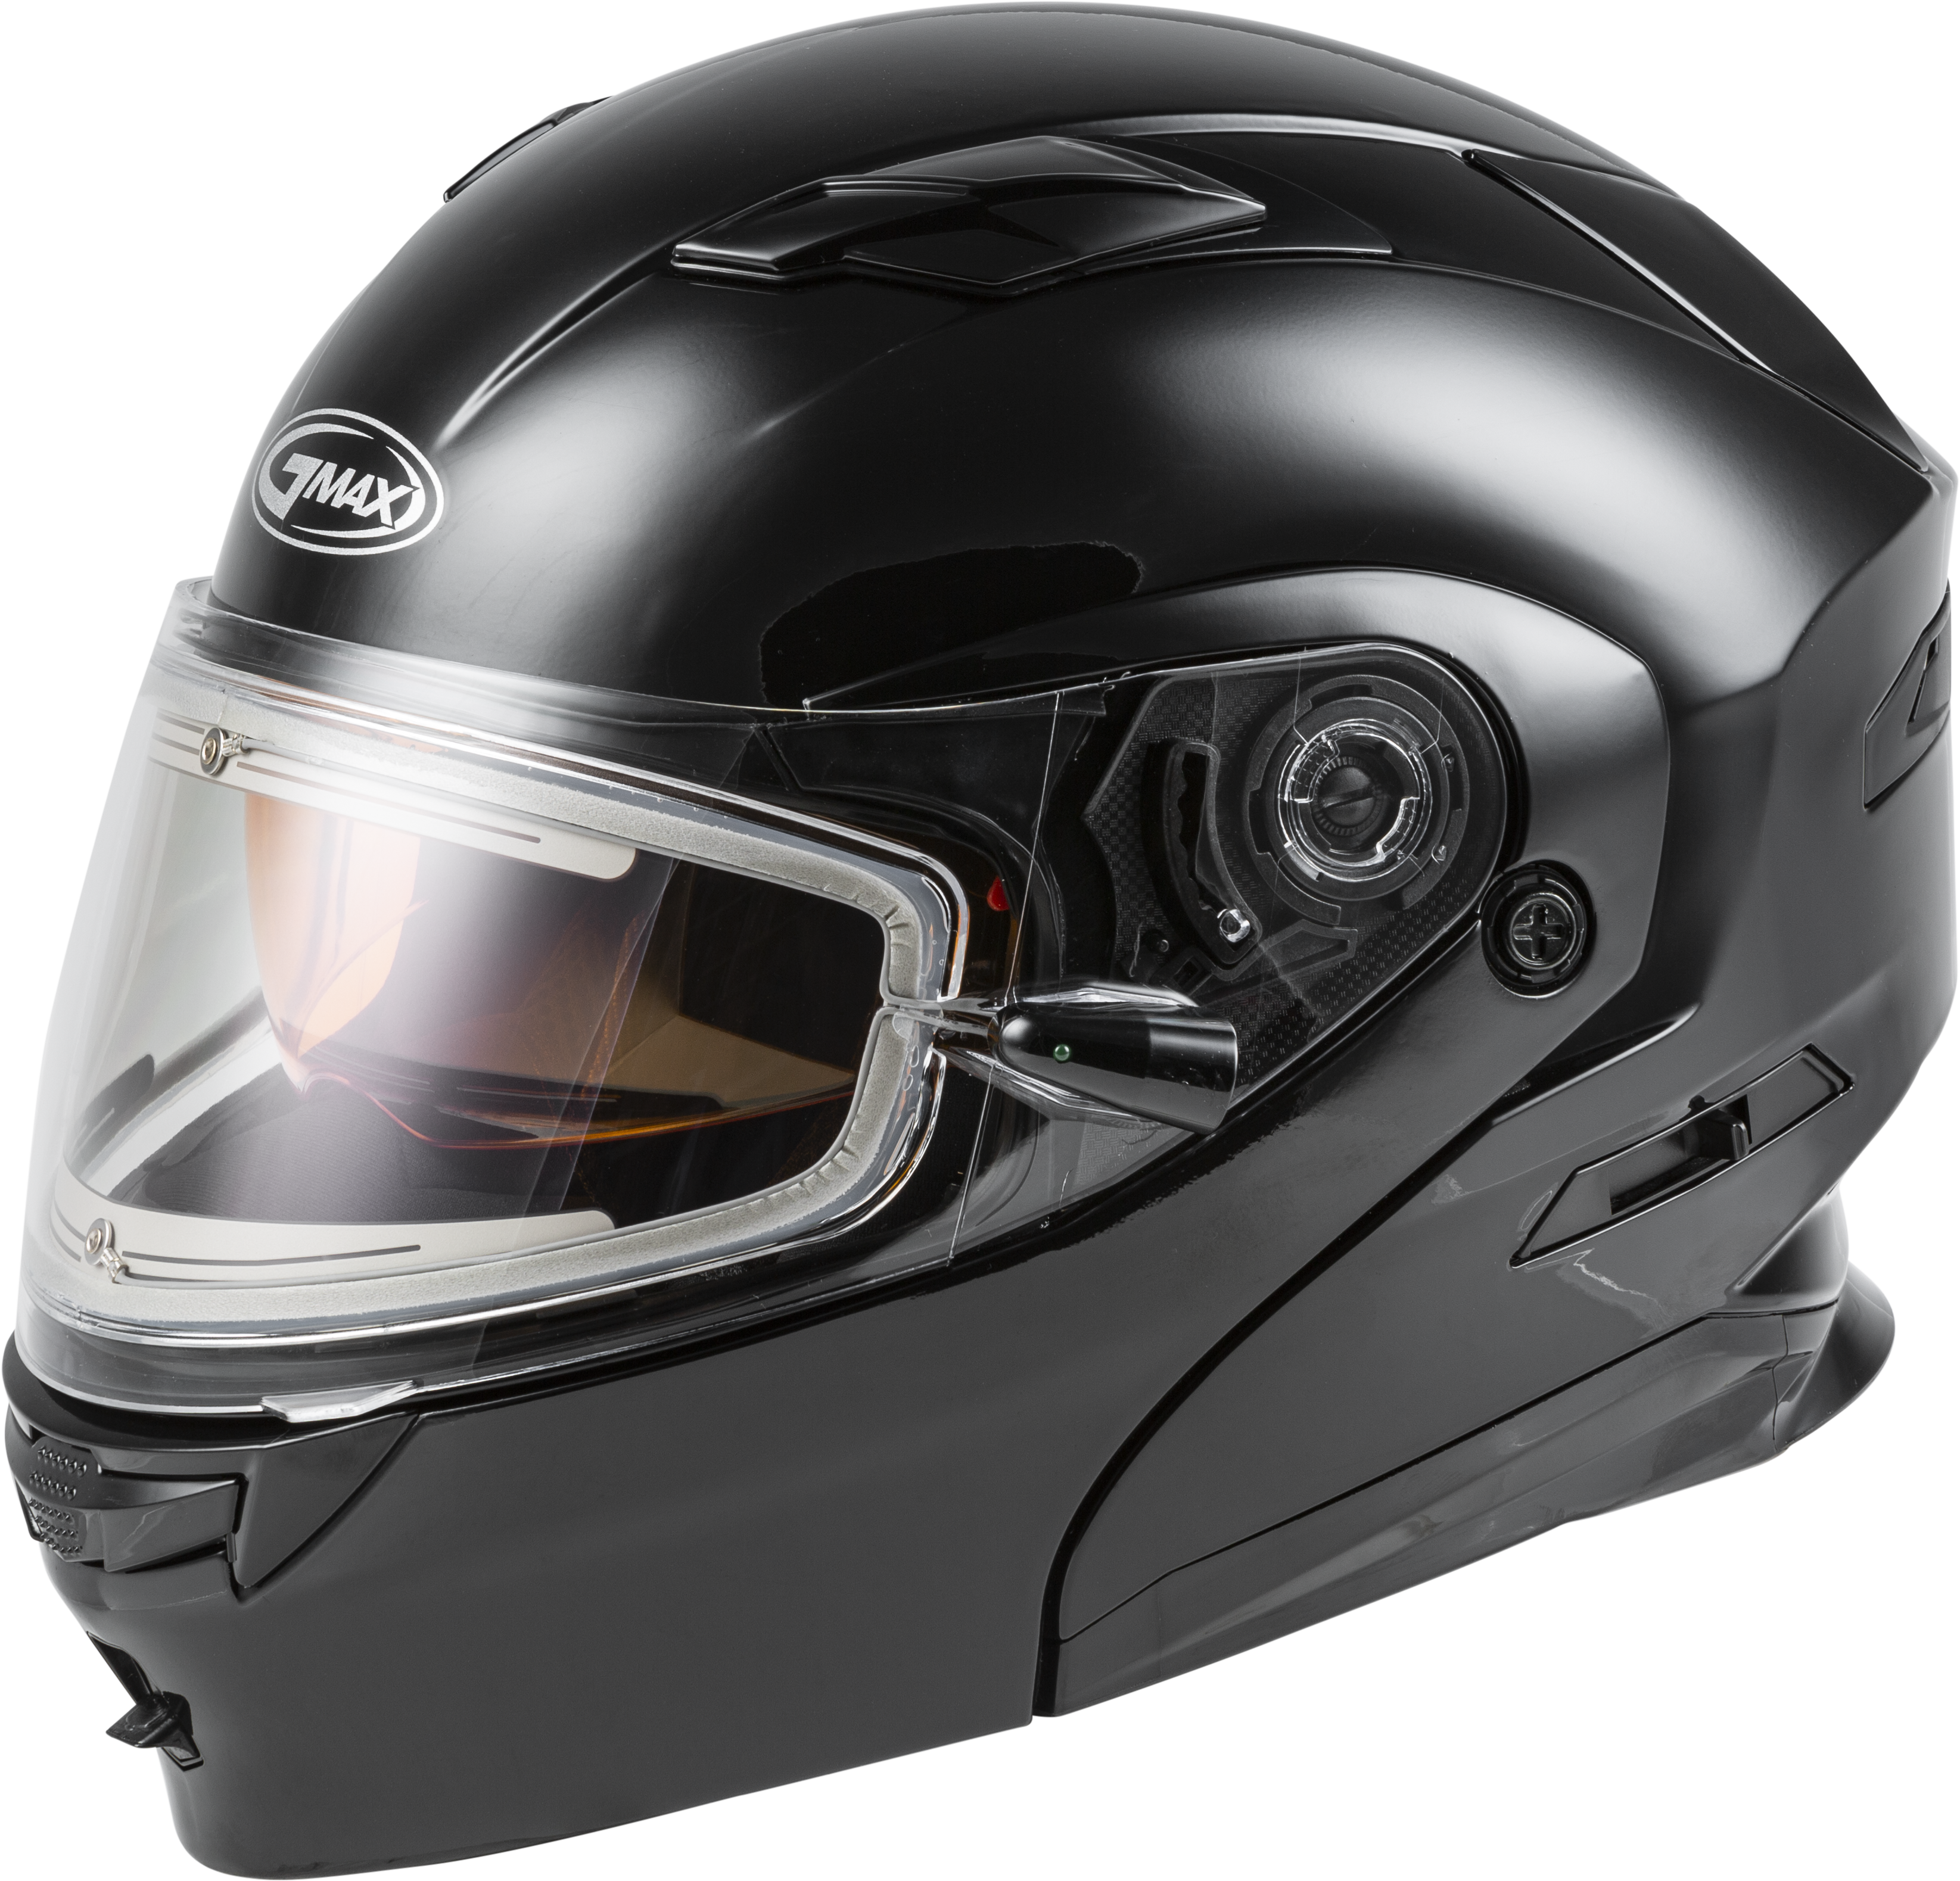 MD-01S Modular Snow Helmet Solid w/Quick Release Buckle Electric shield